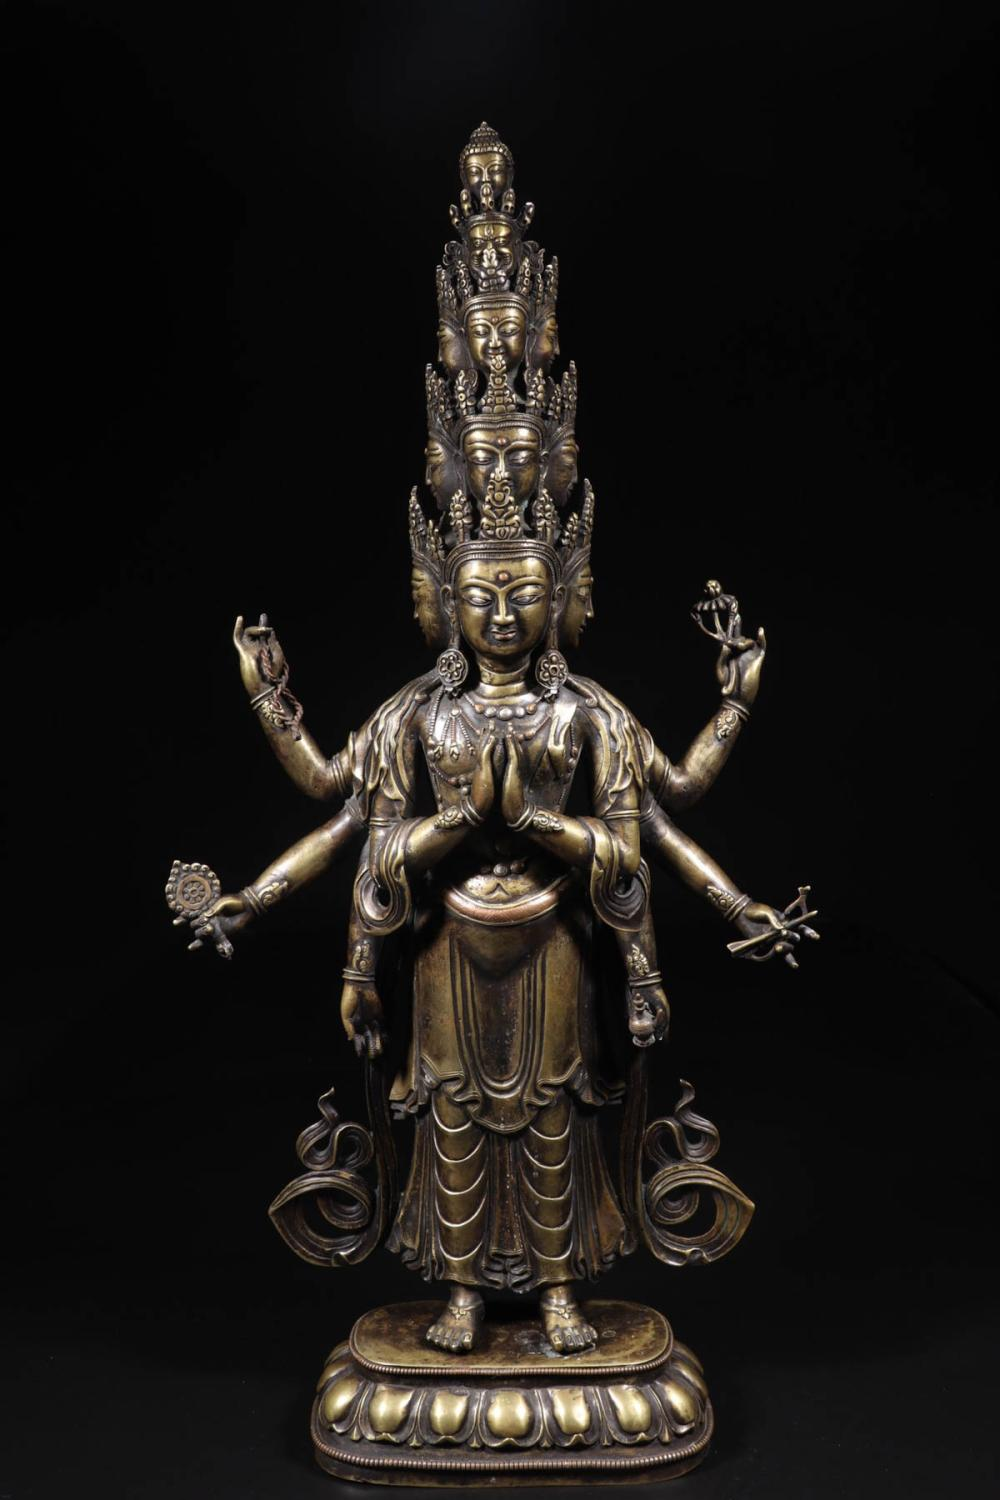 A GILT BRONZE 11 FACES 8 ARMS BUDDHA